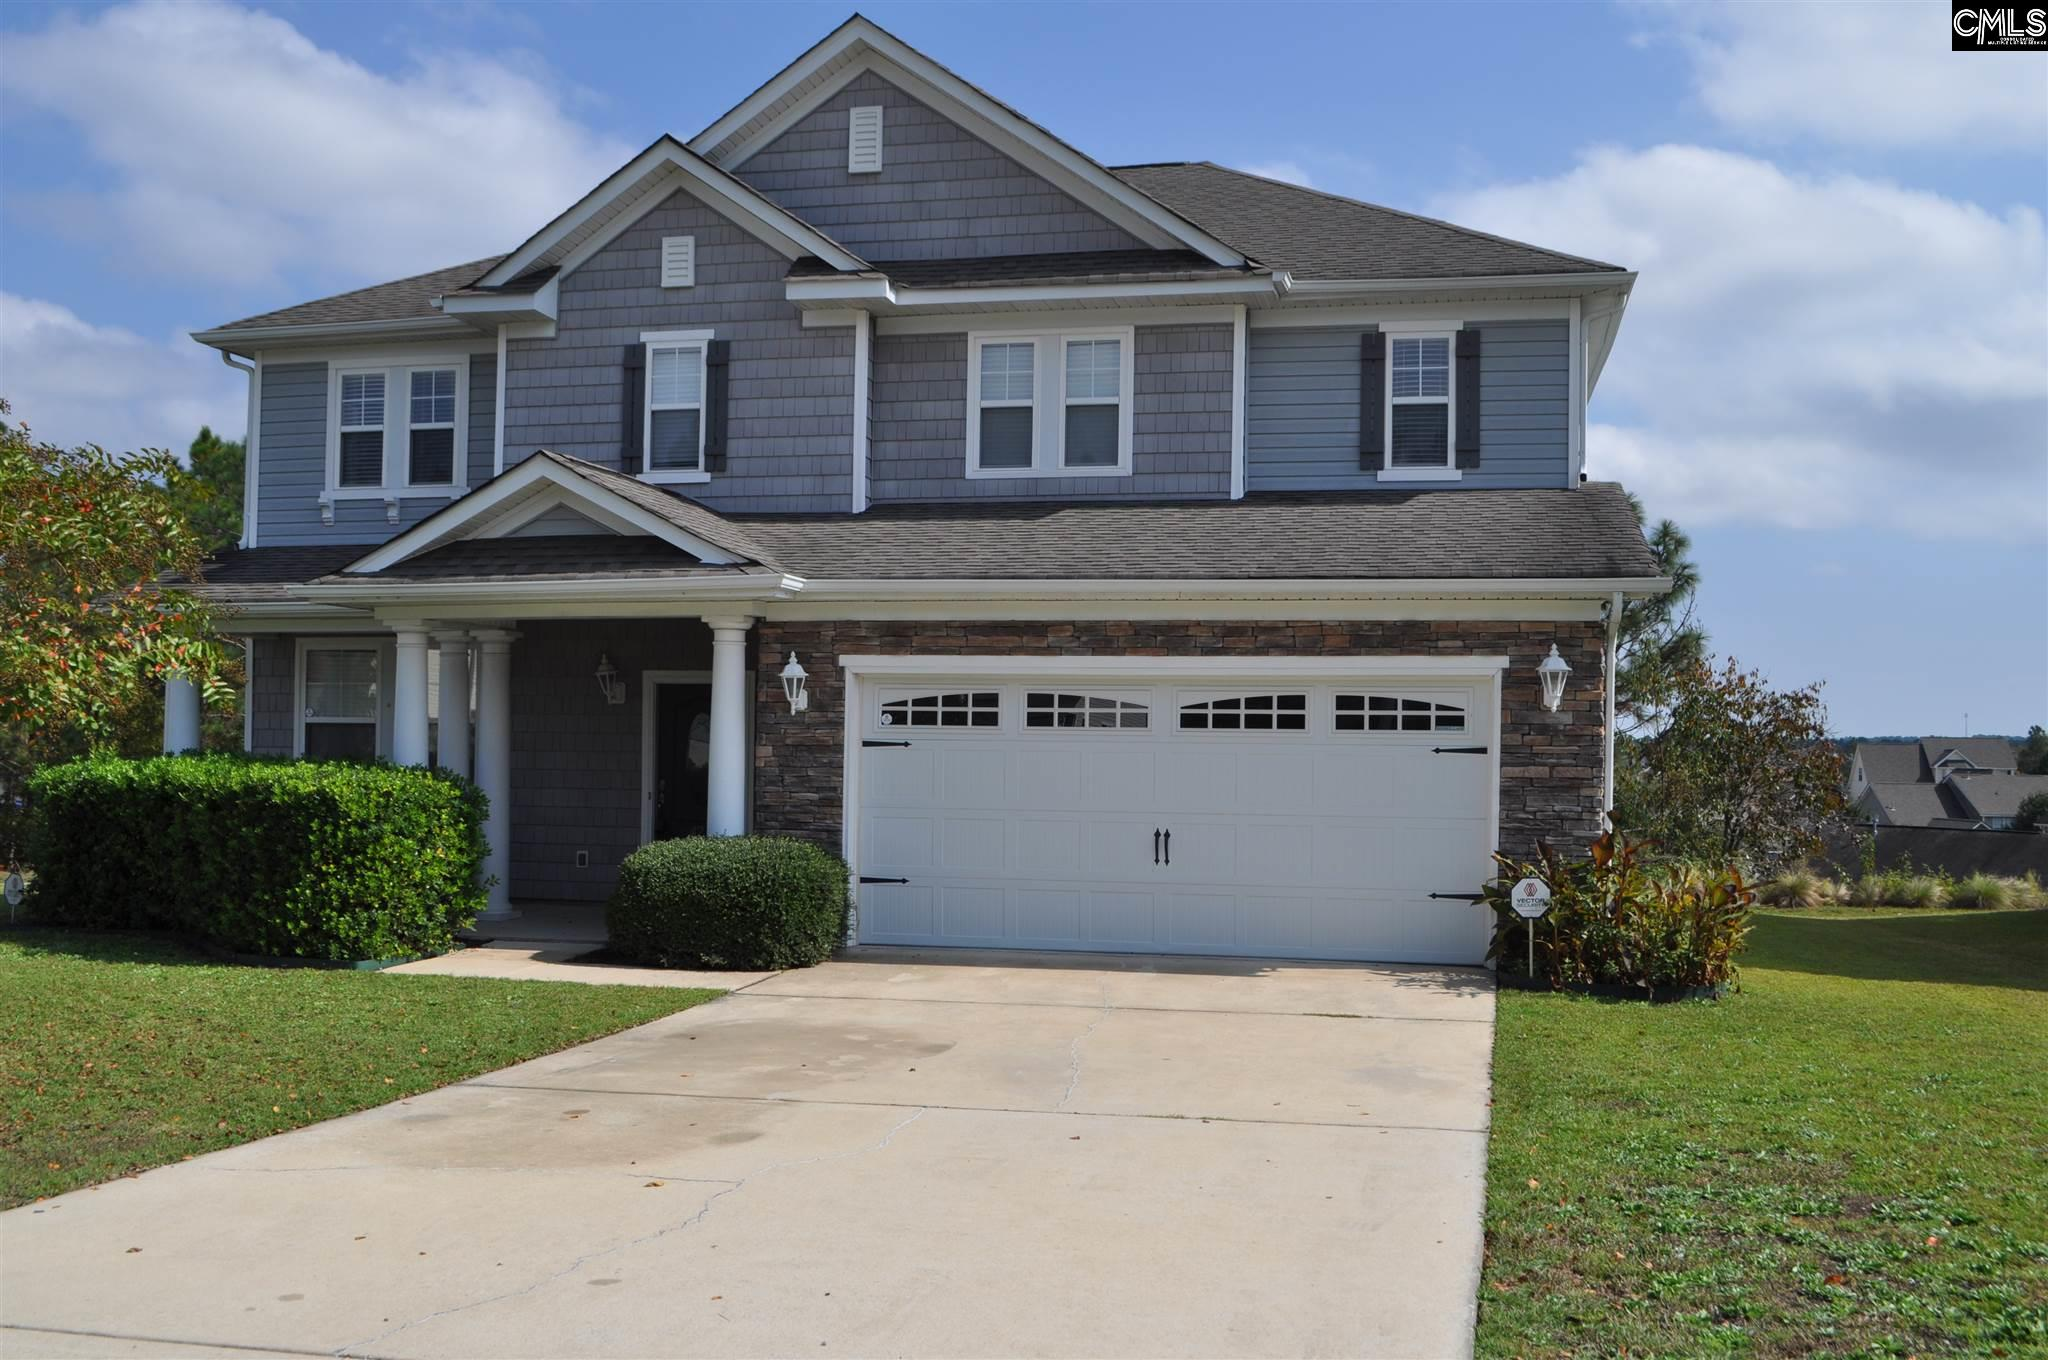 427 Indigo Ridge Columbia, SC 29229-7157